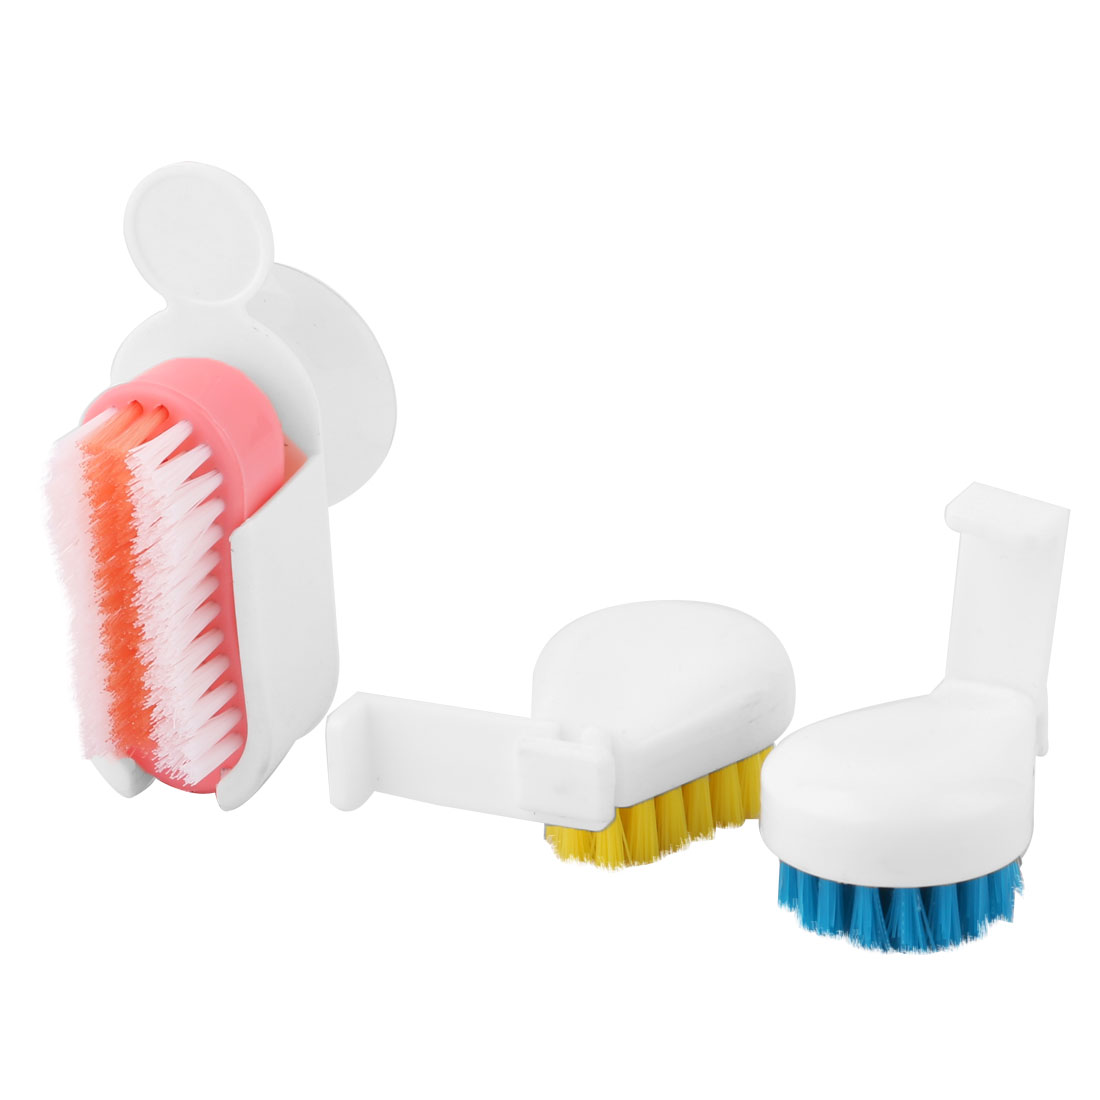 Bathroom Washroom Washbasin Washstand Cleaning Tool Scrubbing Brush 2 Sets